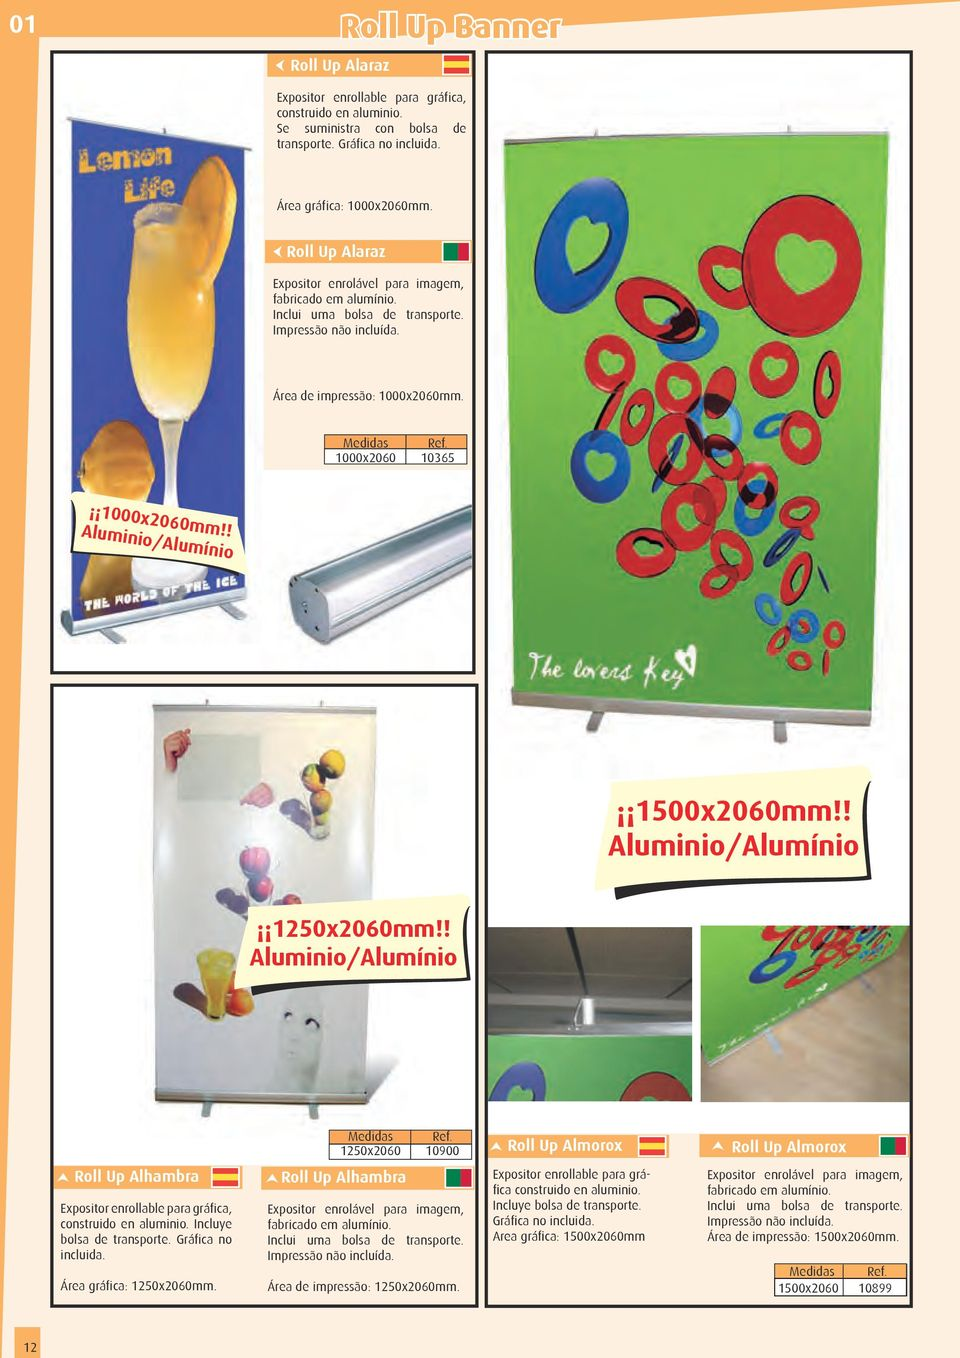 ! Aluminio 1500x2060mm!! Aluminio/Alumínio 1250x2060mm!! Aluminio/Alumínio s 1250x2060 10900 Roll Up Almorox Roll Up Almorox Roll Up Alhambra Expositor enrollable para gráfica, construido en aluminio.